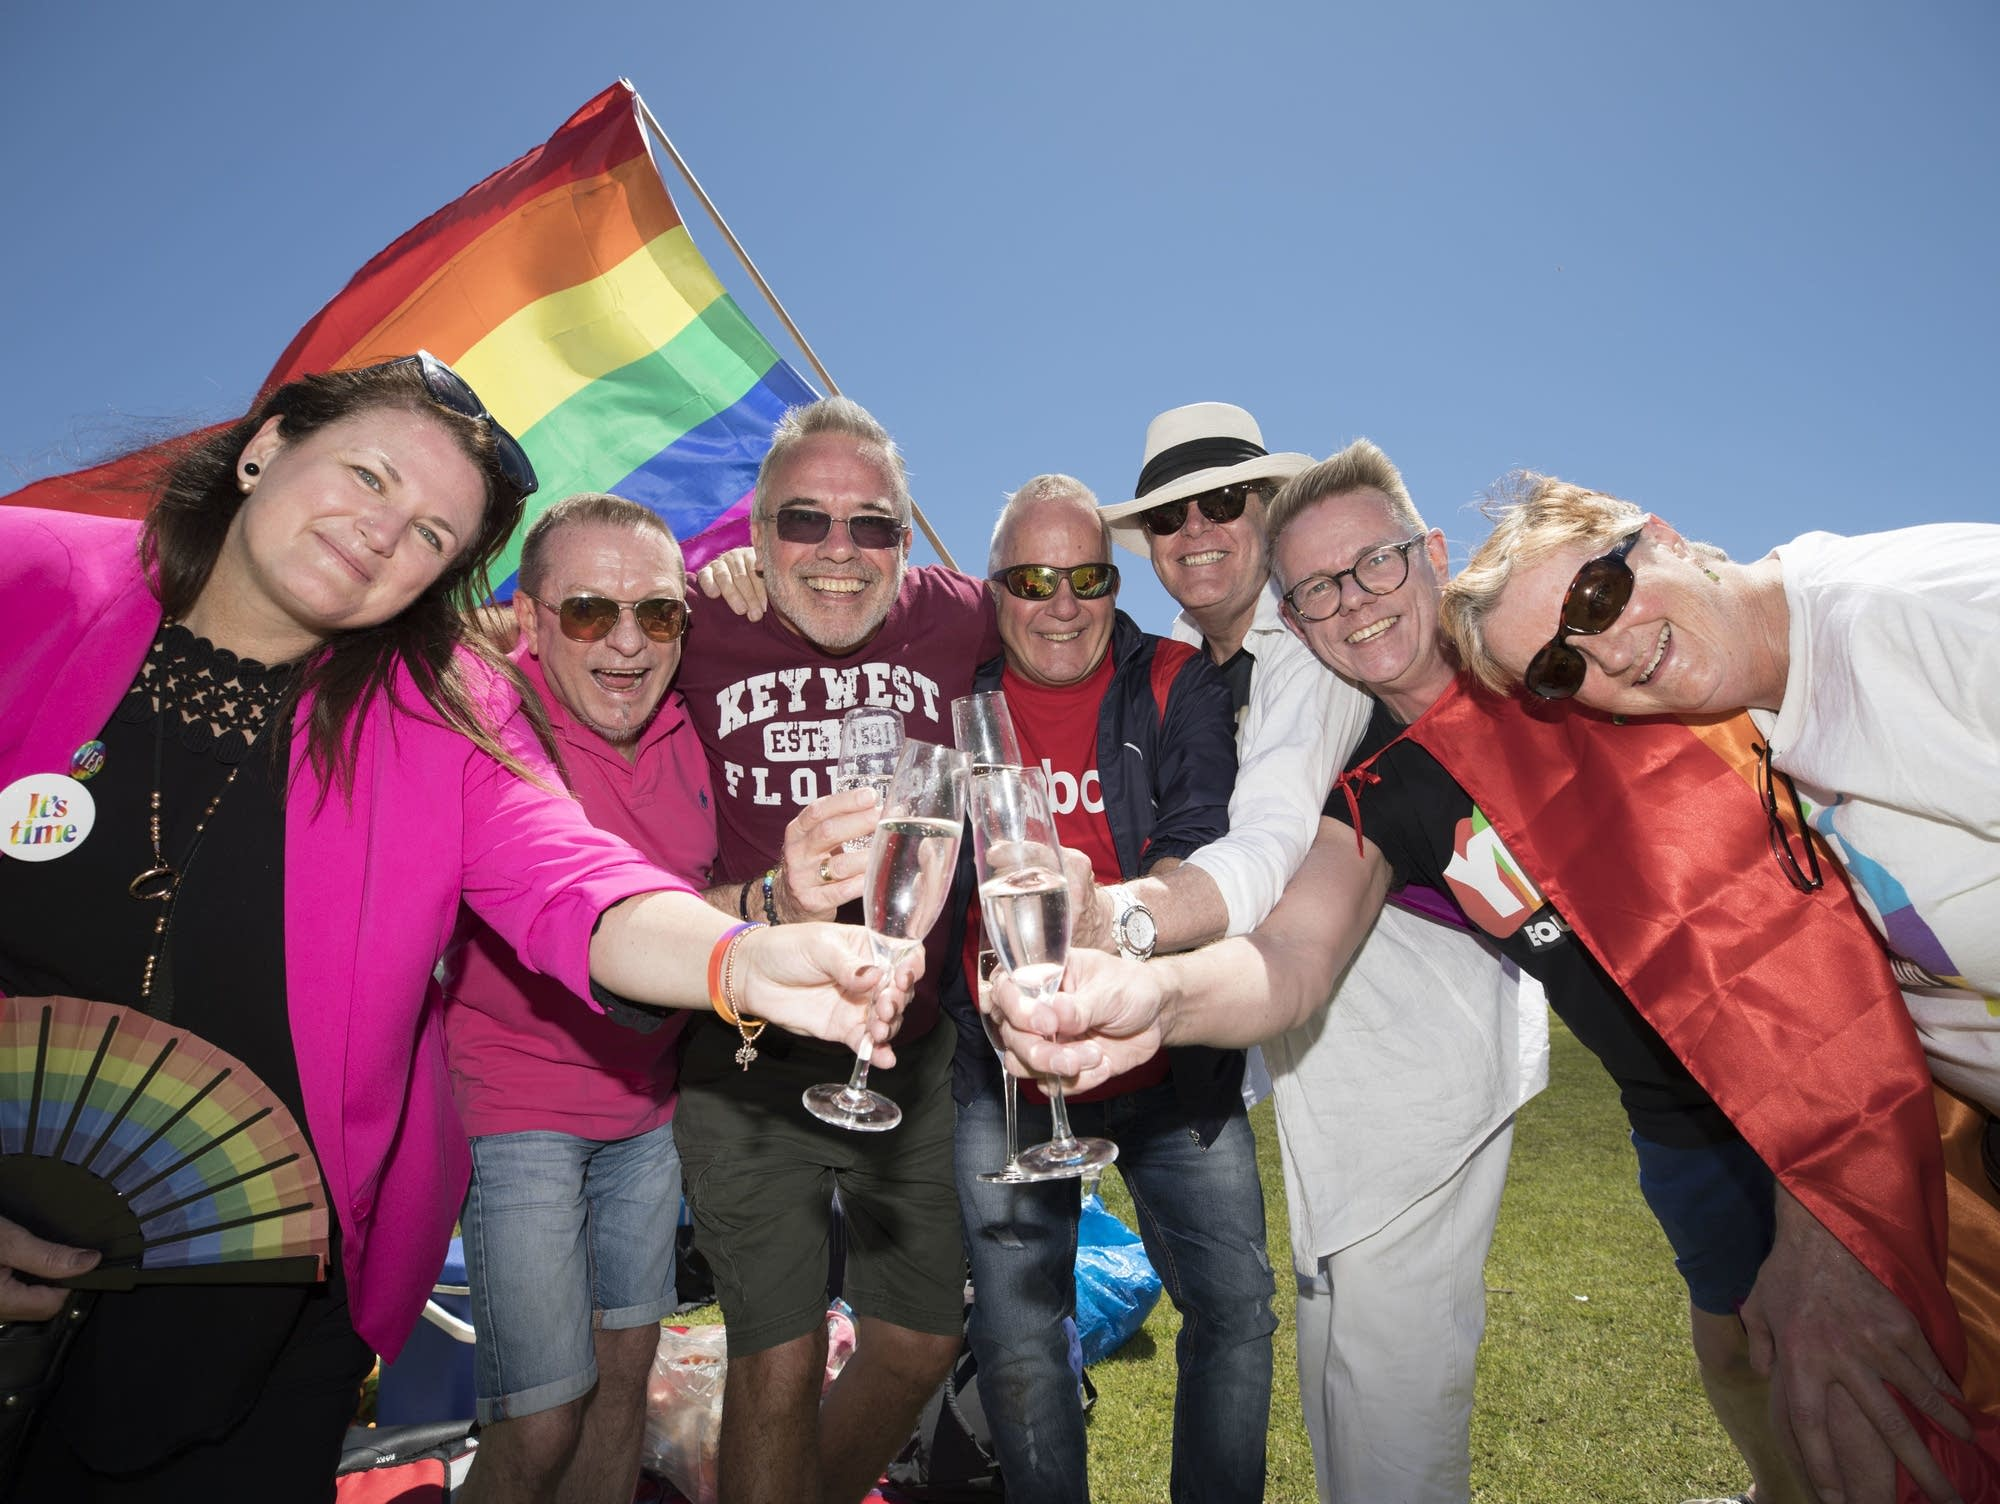 Australians celebrate at the marriage equality survey result